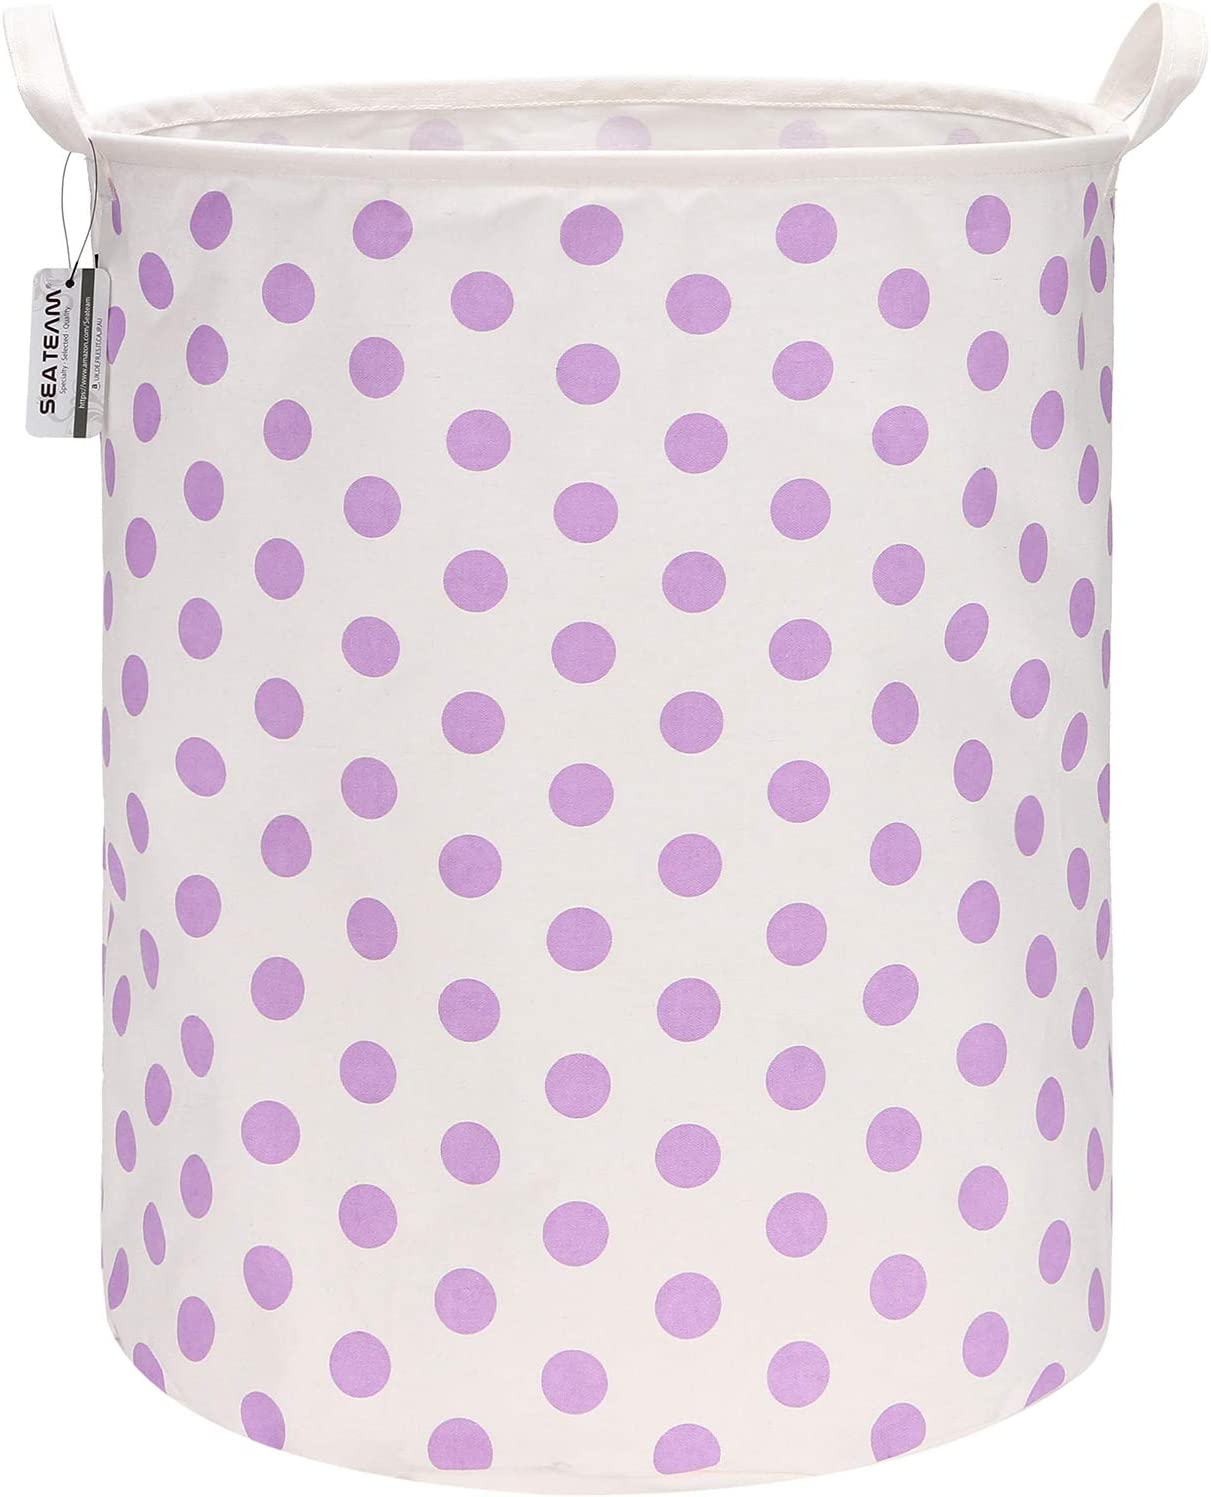 "Sea Team 19.7 Inches Large Sized Waterproof Coating Ramie Cotton Fabric Folding Laundry Hamper Bucket Cylindric Burlap Canvas Storage Basket with Stylish Polka Dot Design (19.7"", Purple)"